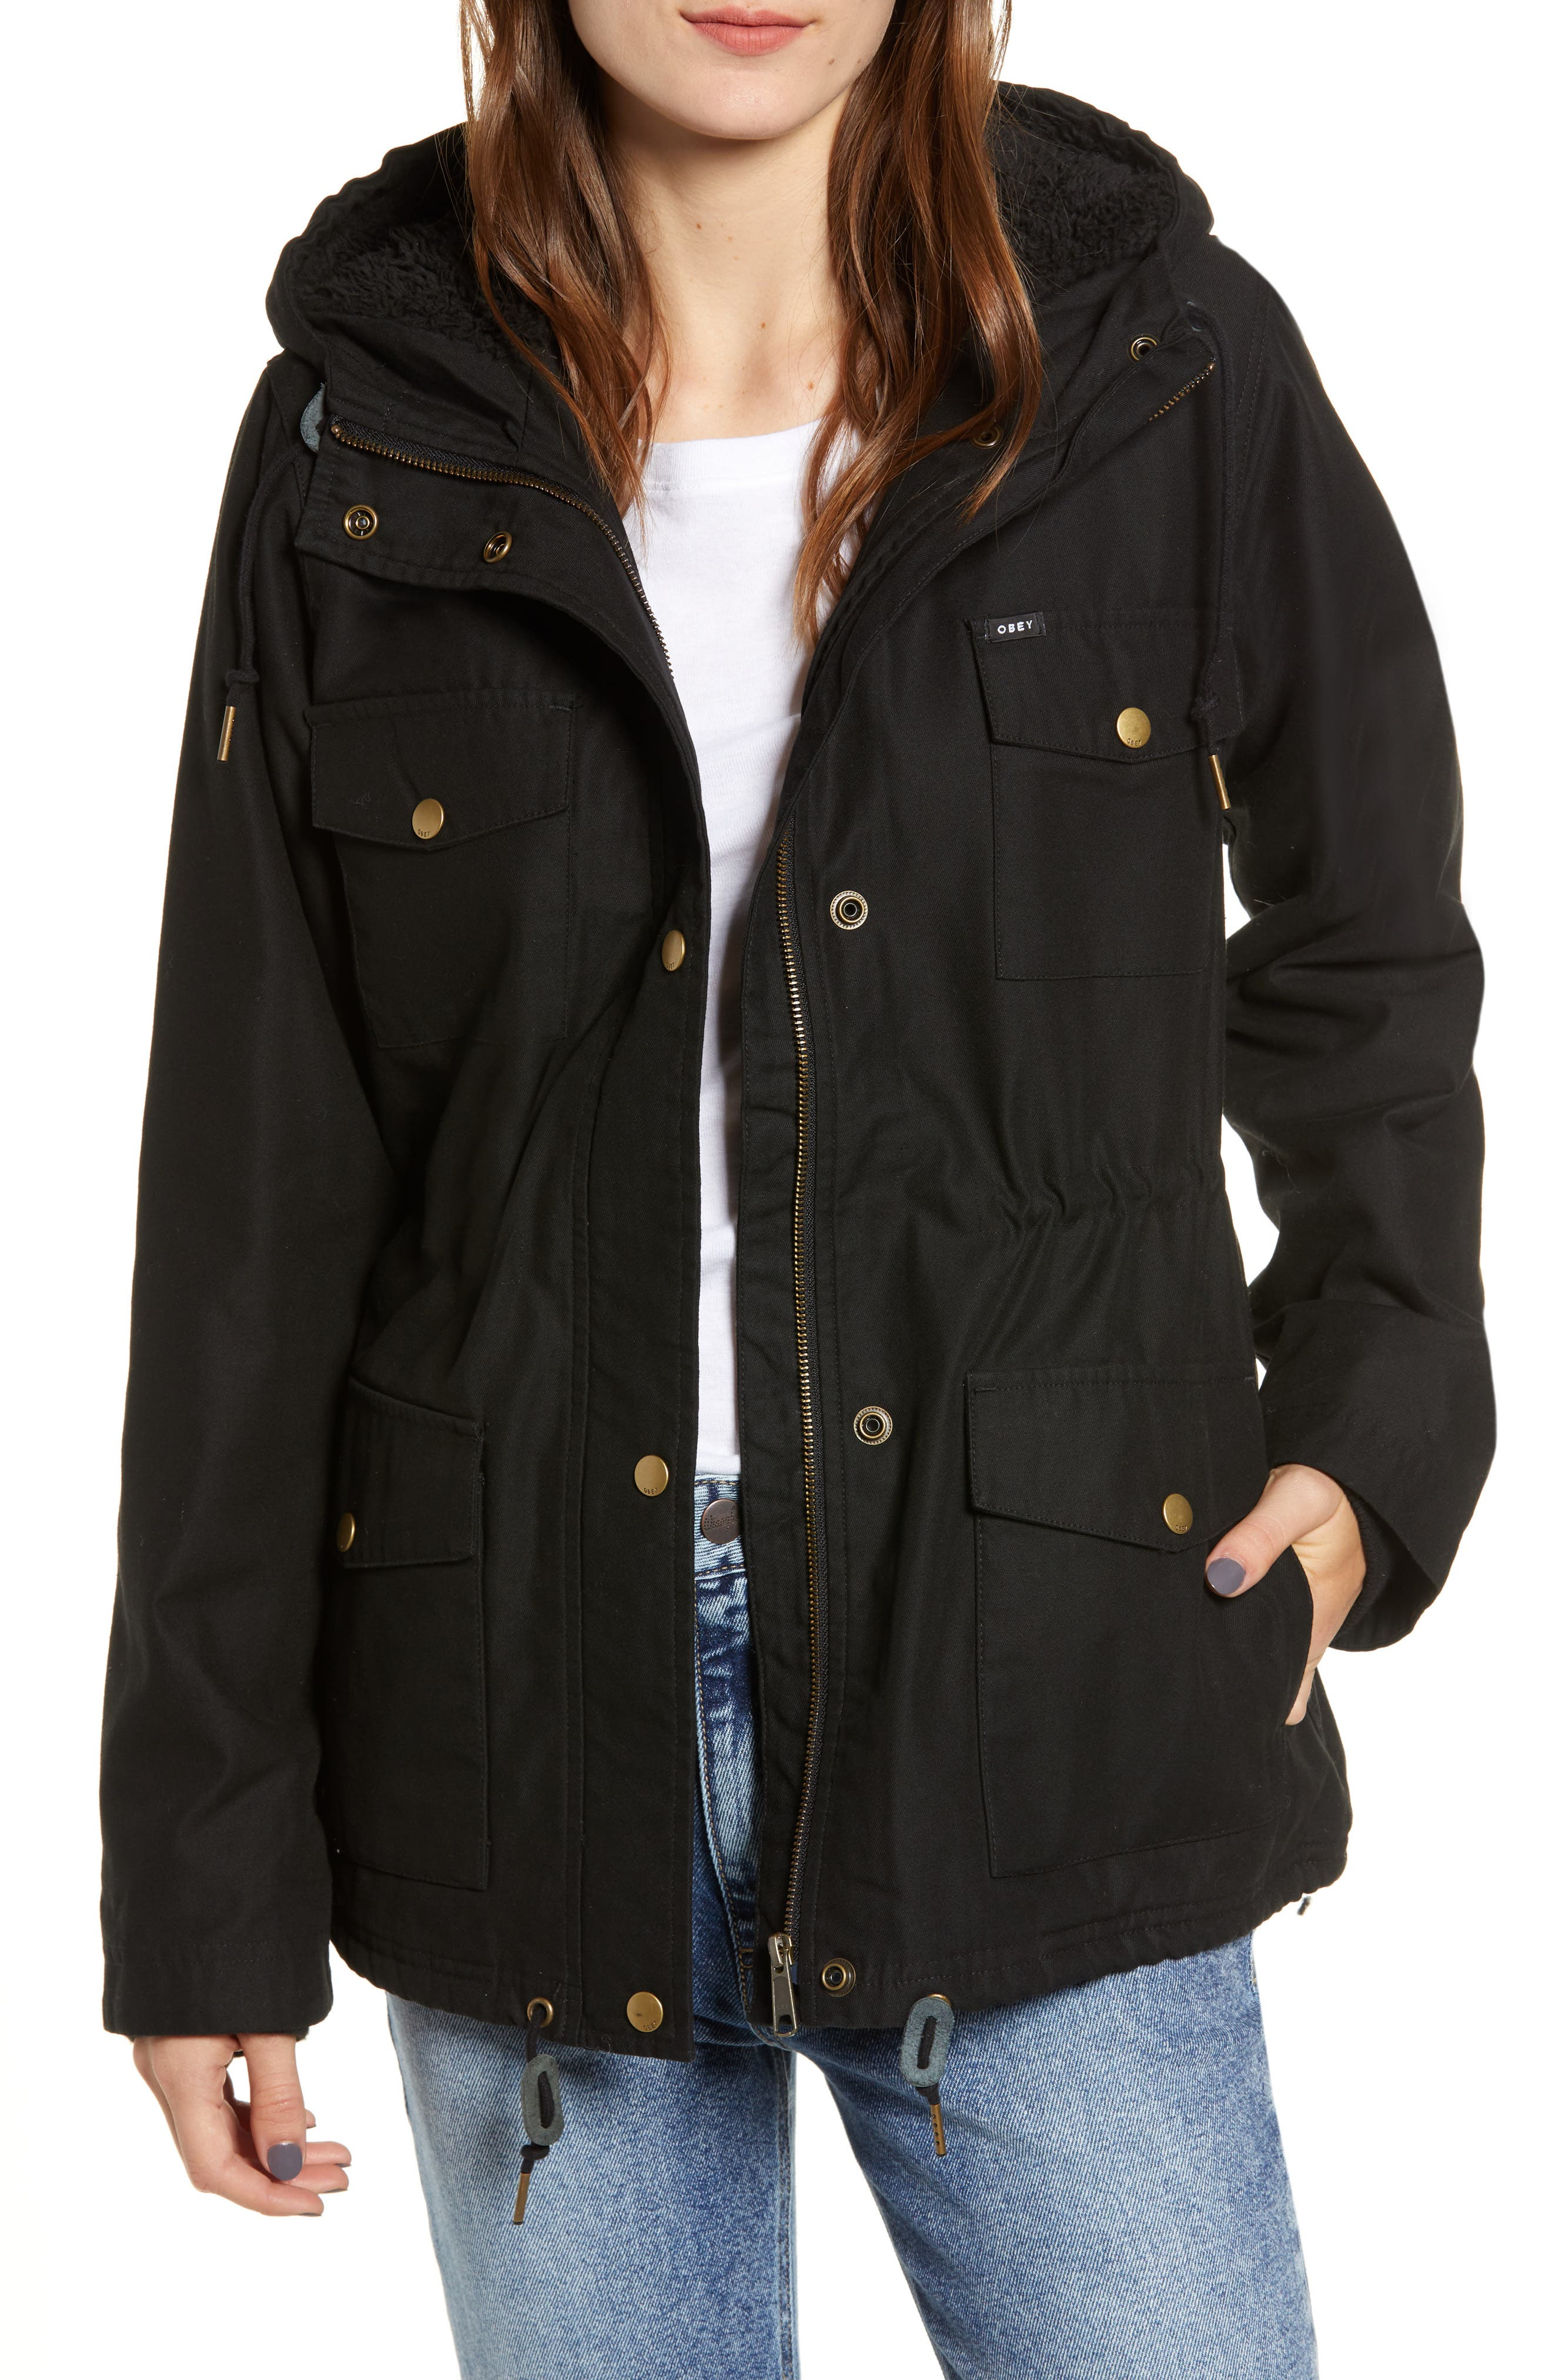 Pistol Water-Resistant Jacket,                             Main thumbnail 1, color,                             001